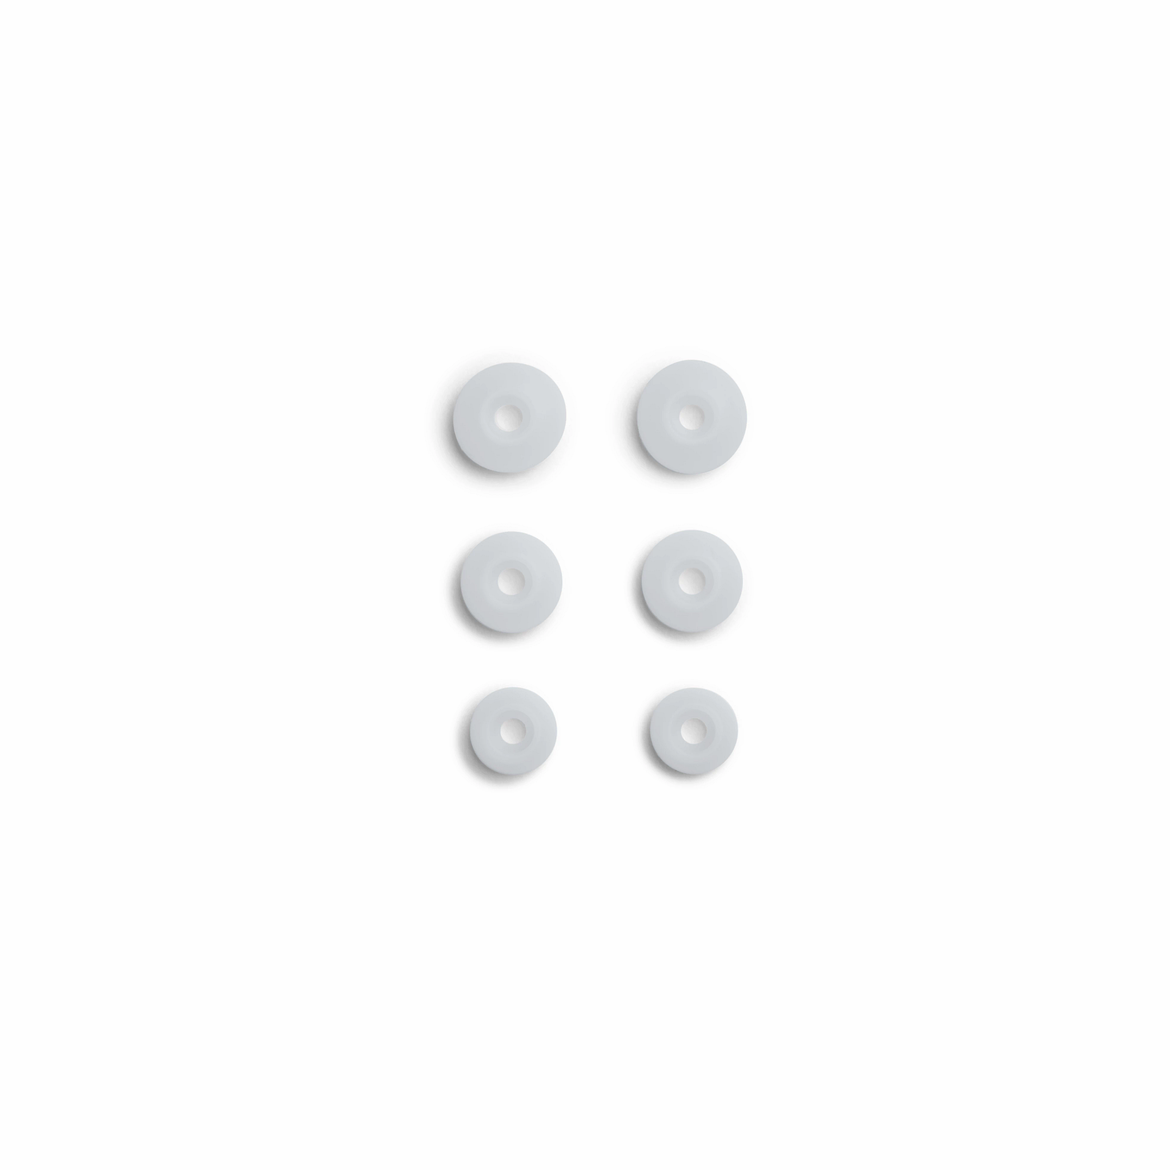 JBL_FREE_II_Product image_Accessories_White